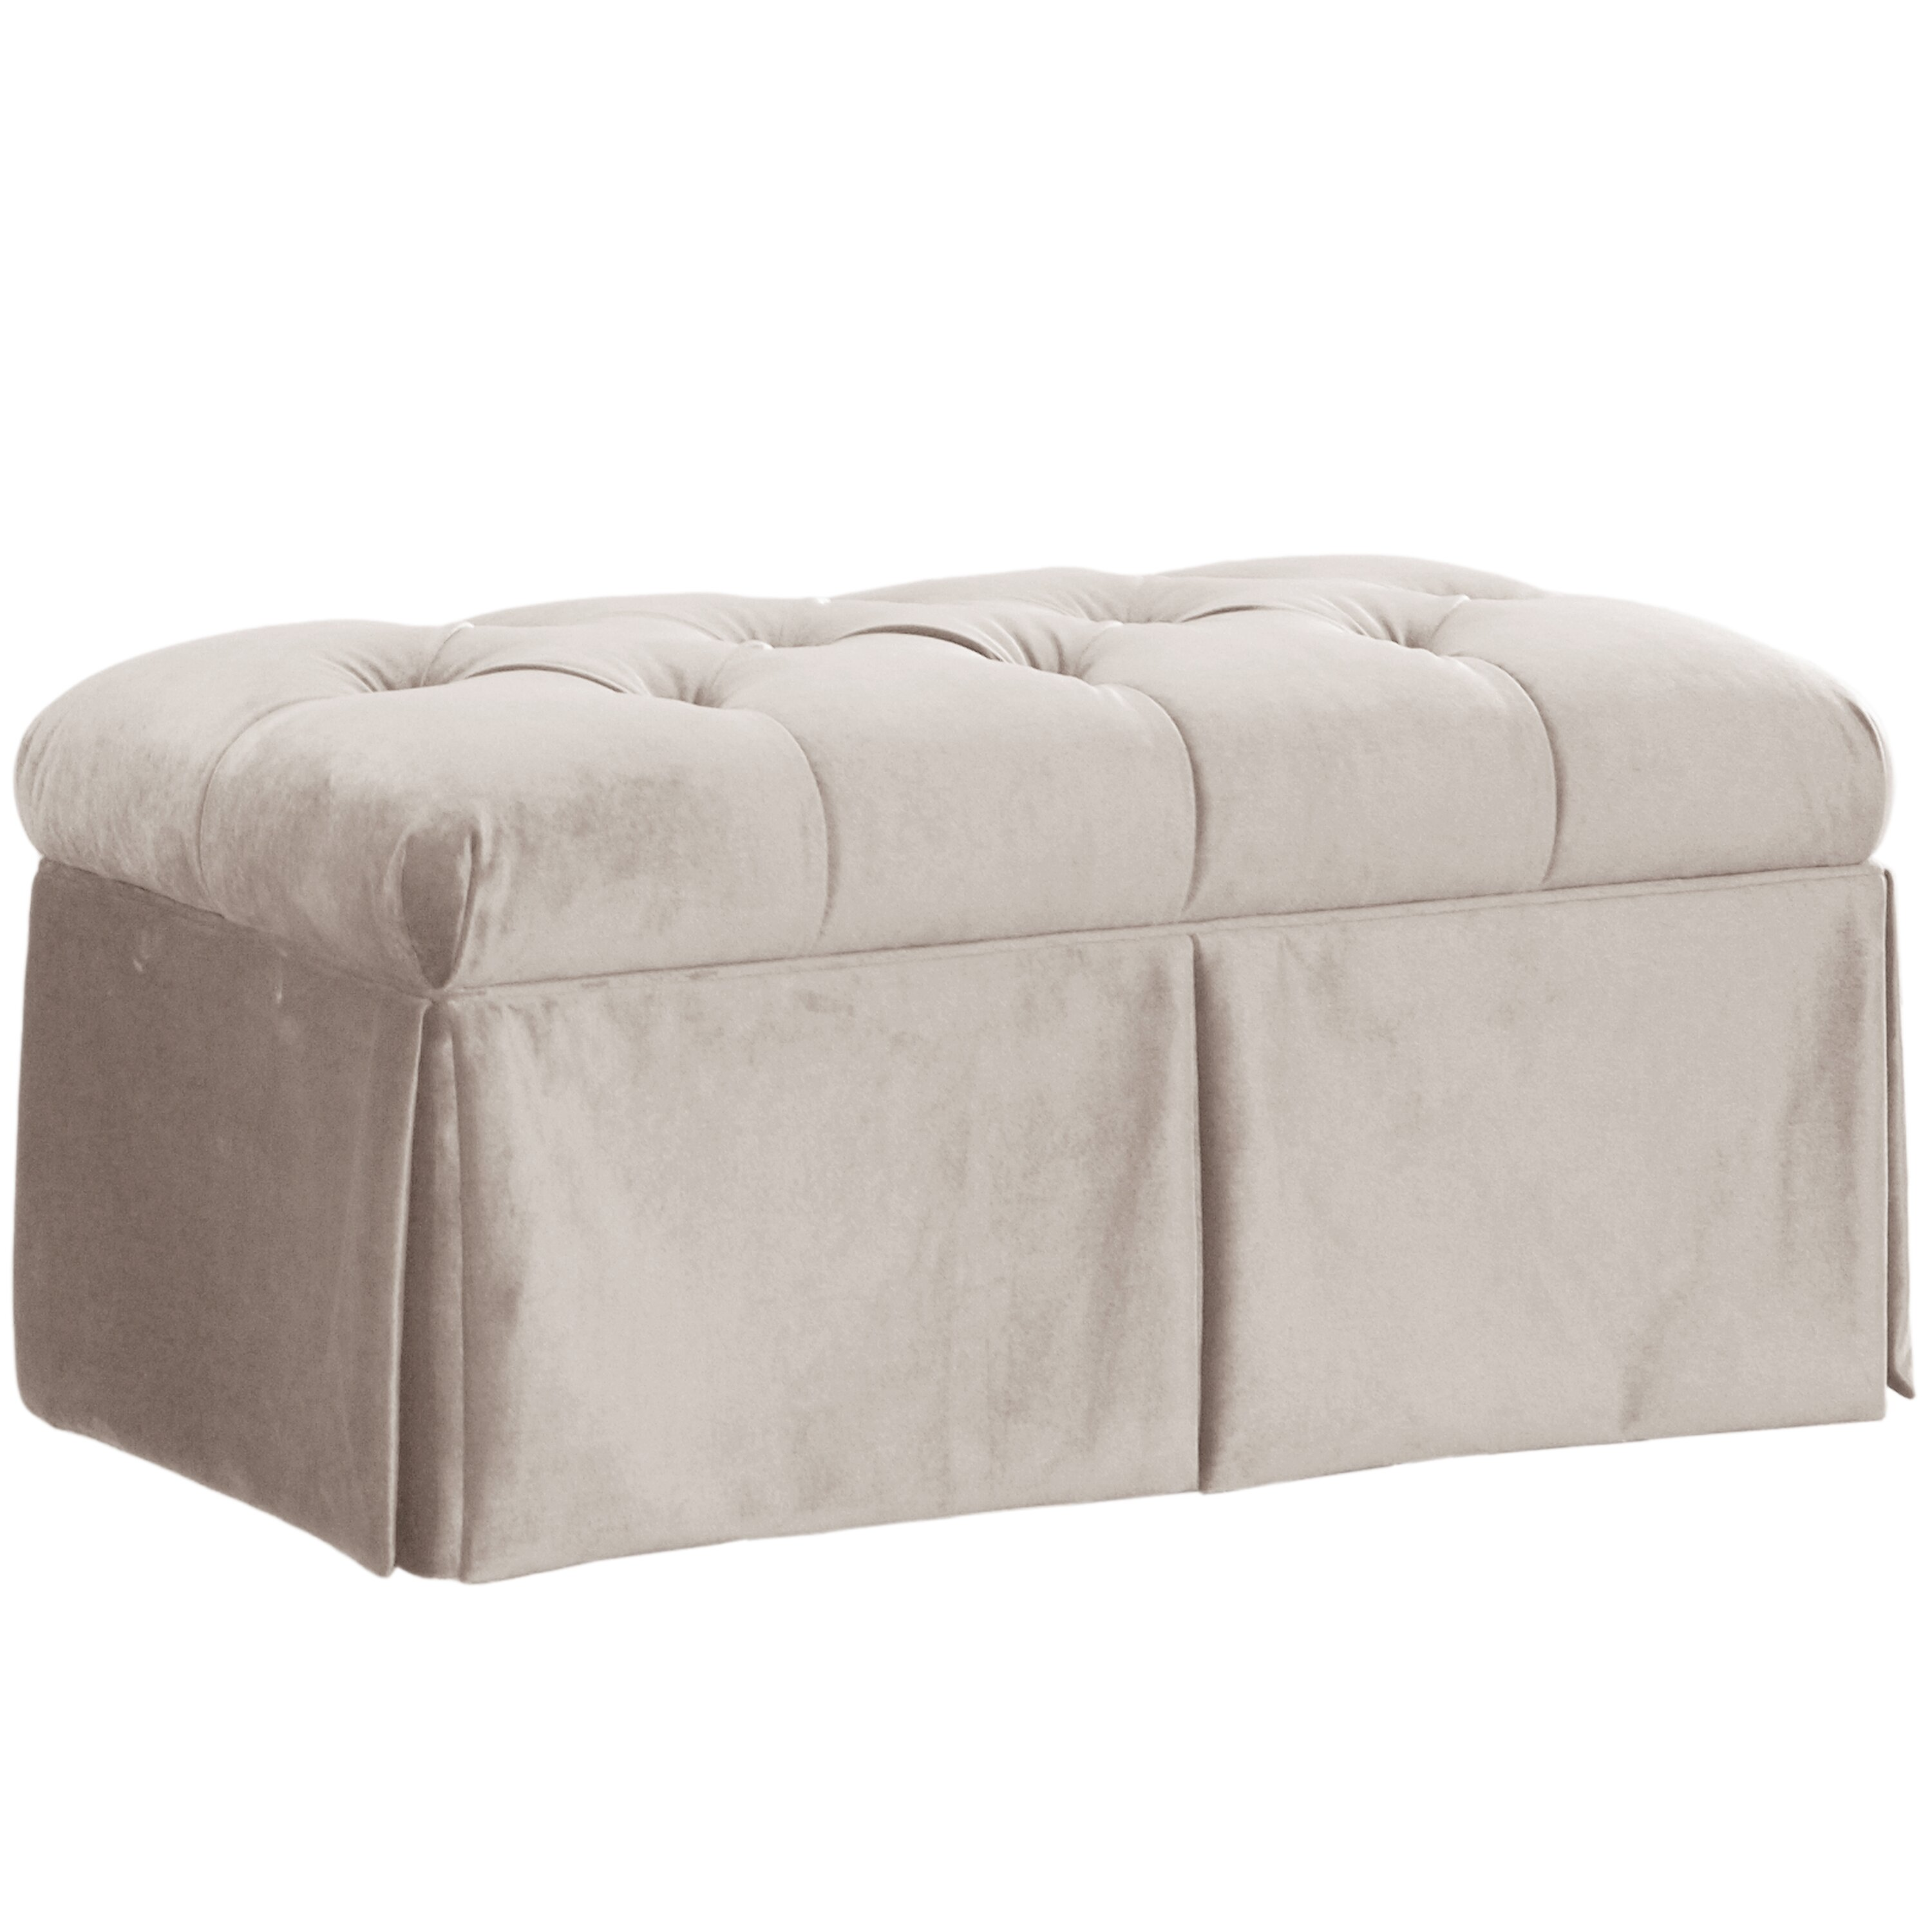 House Of Hampton Belle Upholstered Storage Bench Wayfair